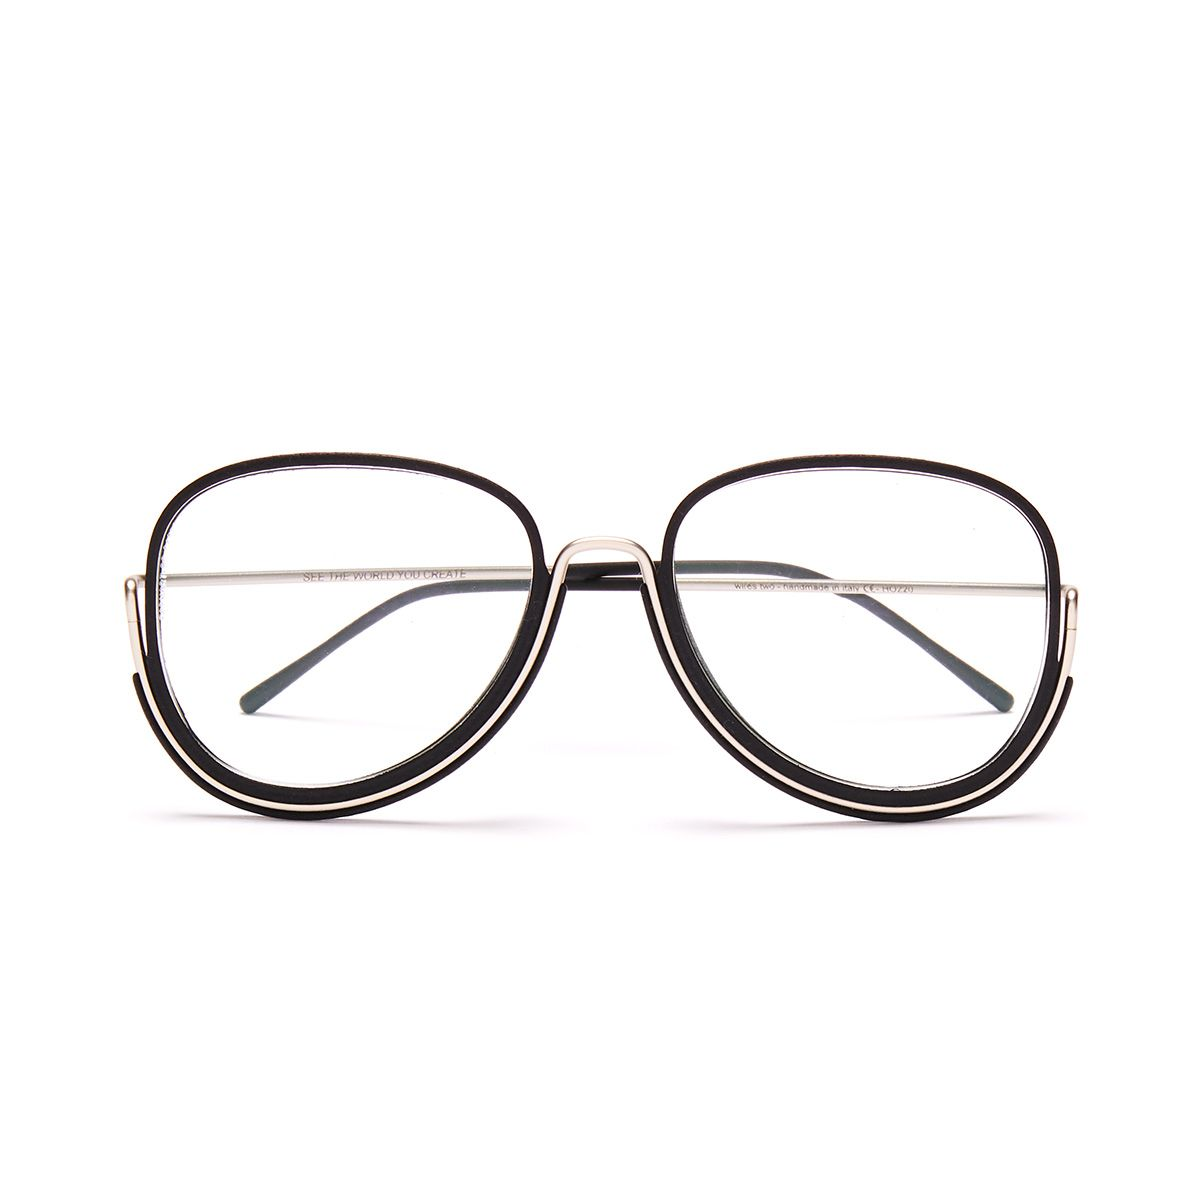 Wires Earhart - Silver/Black